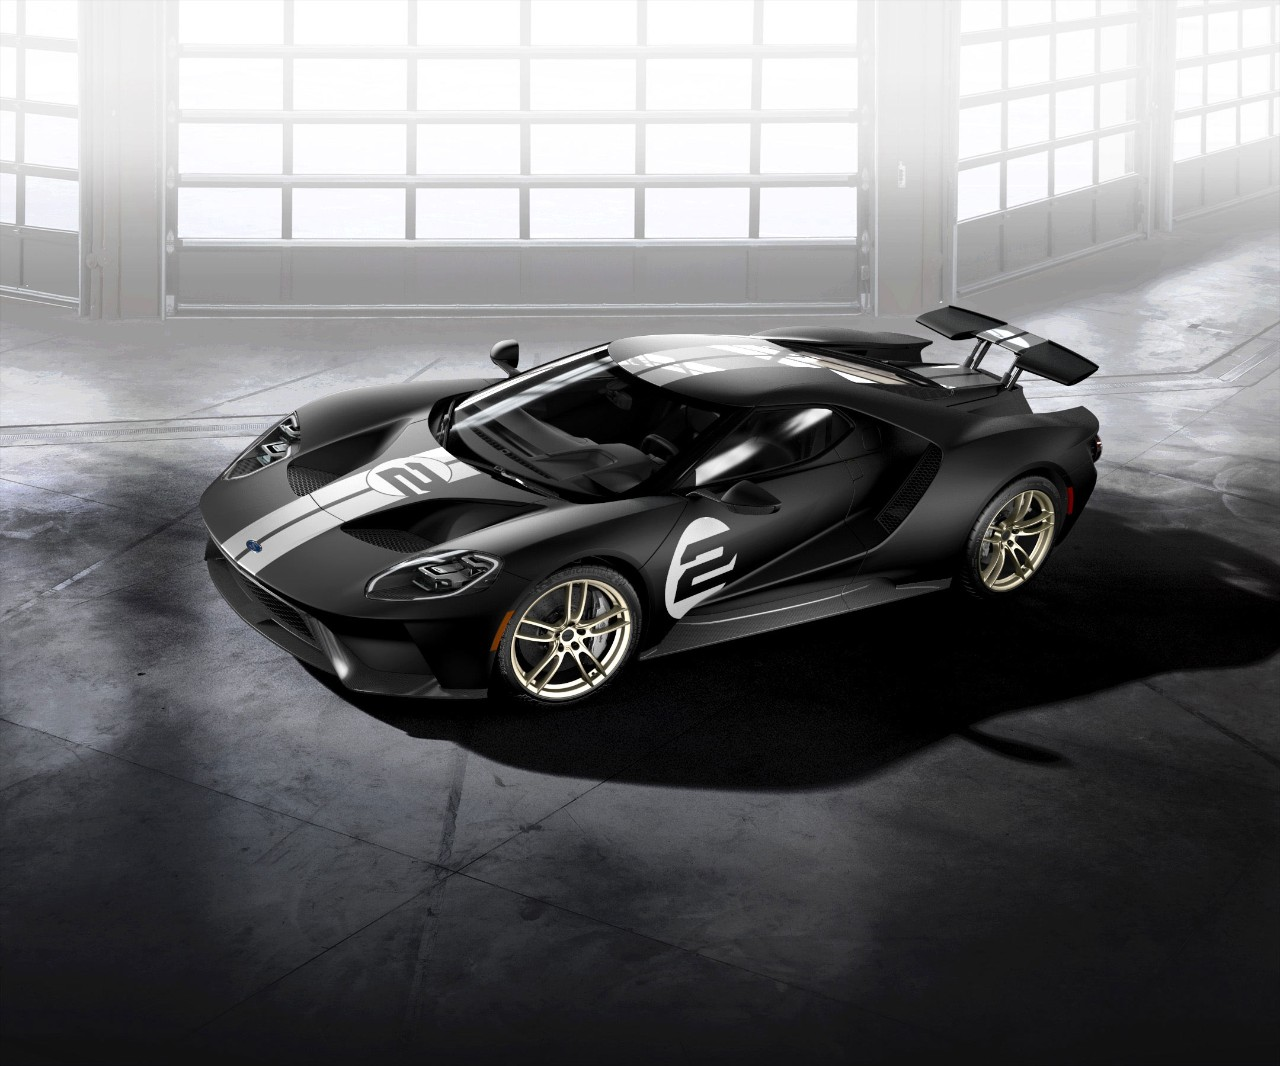 The new 2017 Ford GT '66 Heritage Edition